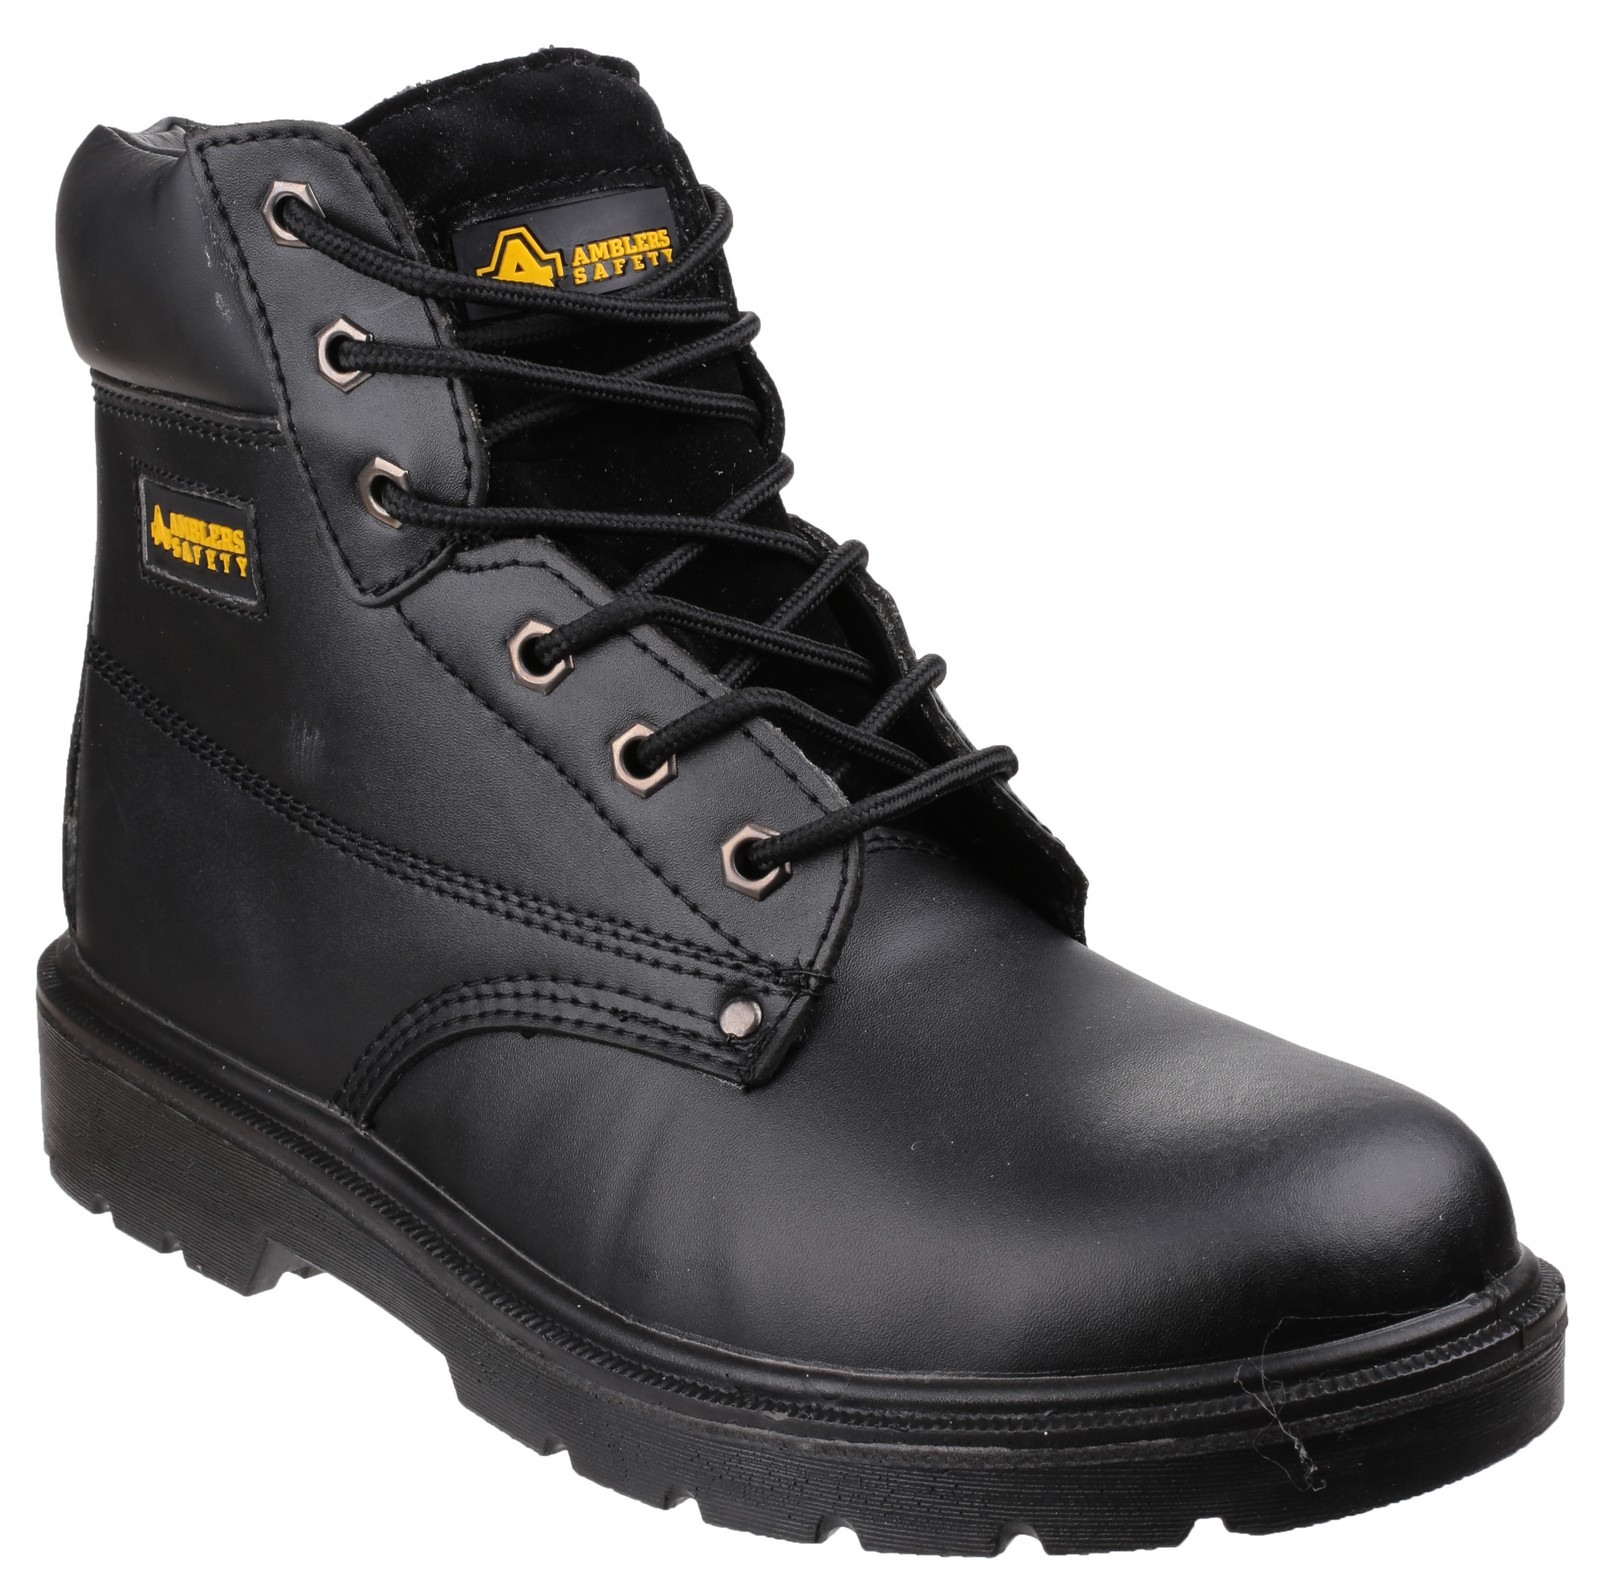 FS159 Safety Boots